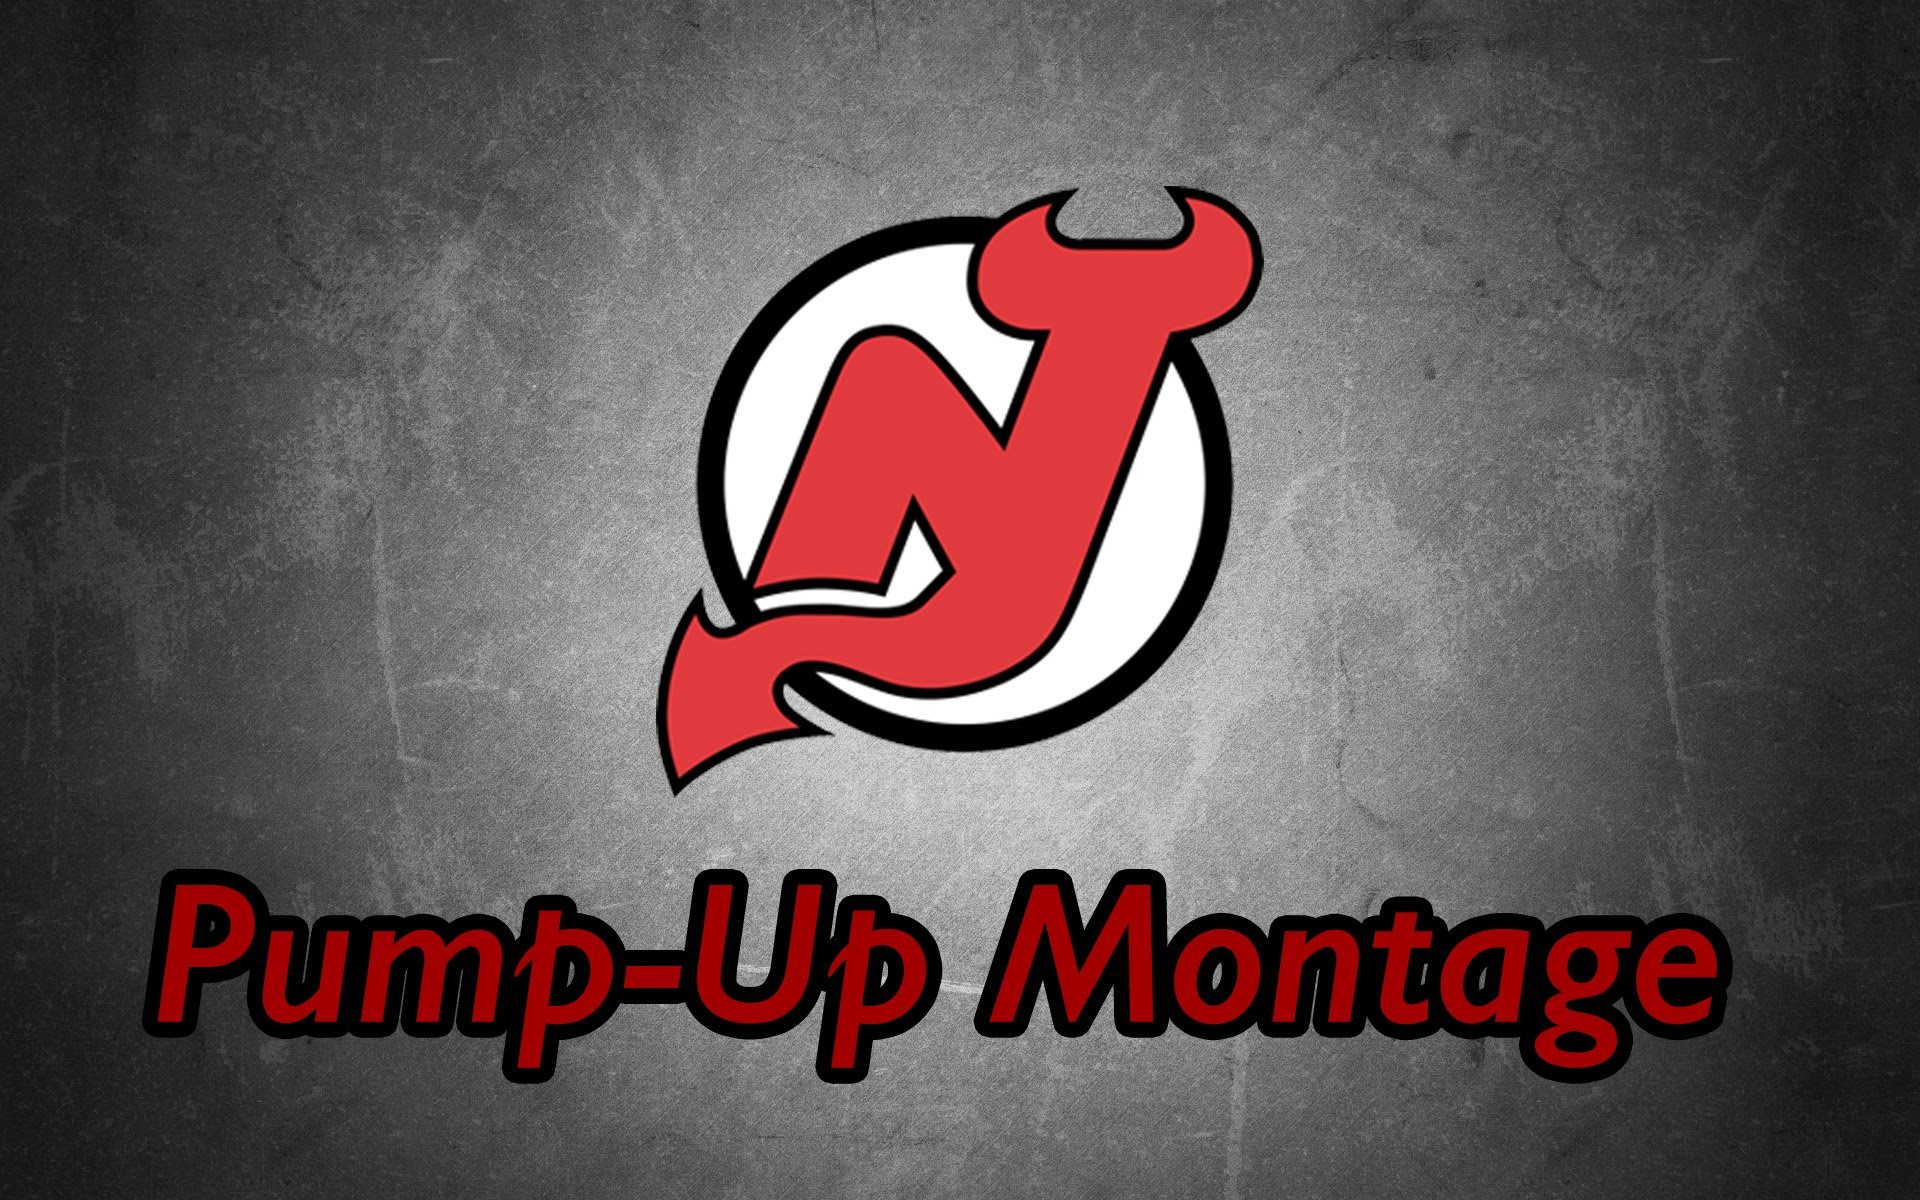 1920x1200 (HD) New Jersey Devils 2016-2017 Pump-Up Montage - YouTube